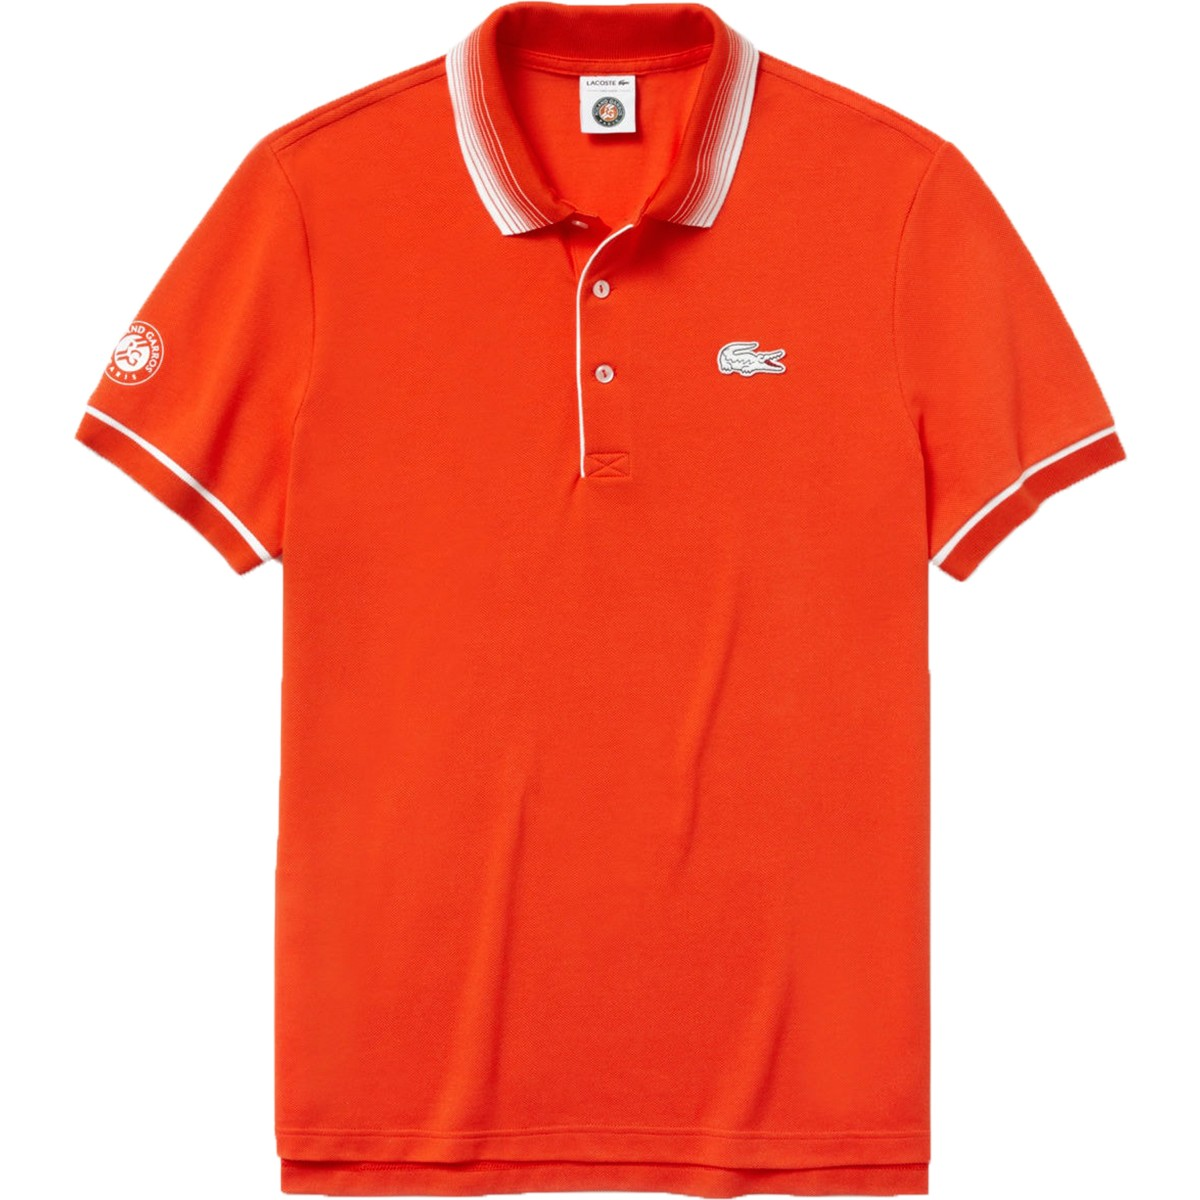 buy lacoste roland garros up to 69 off